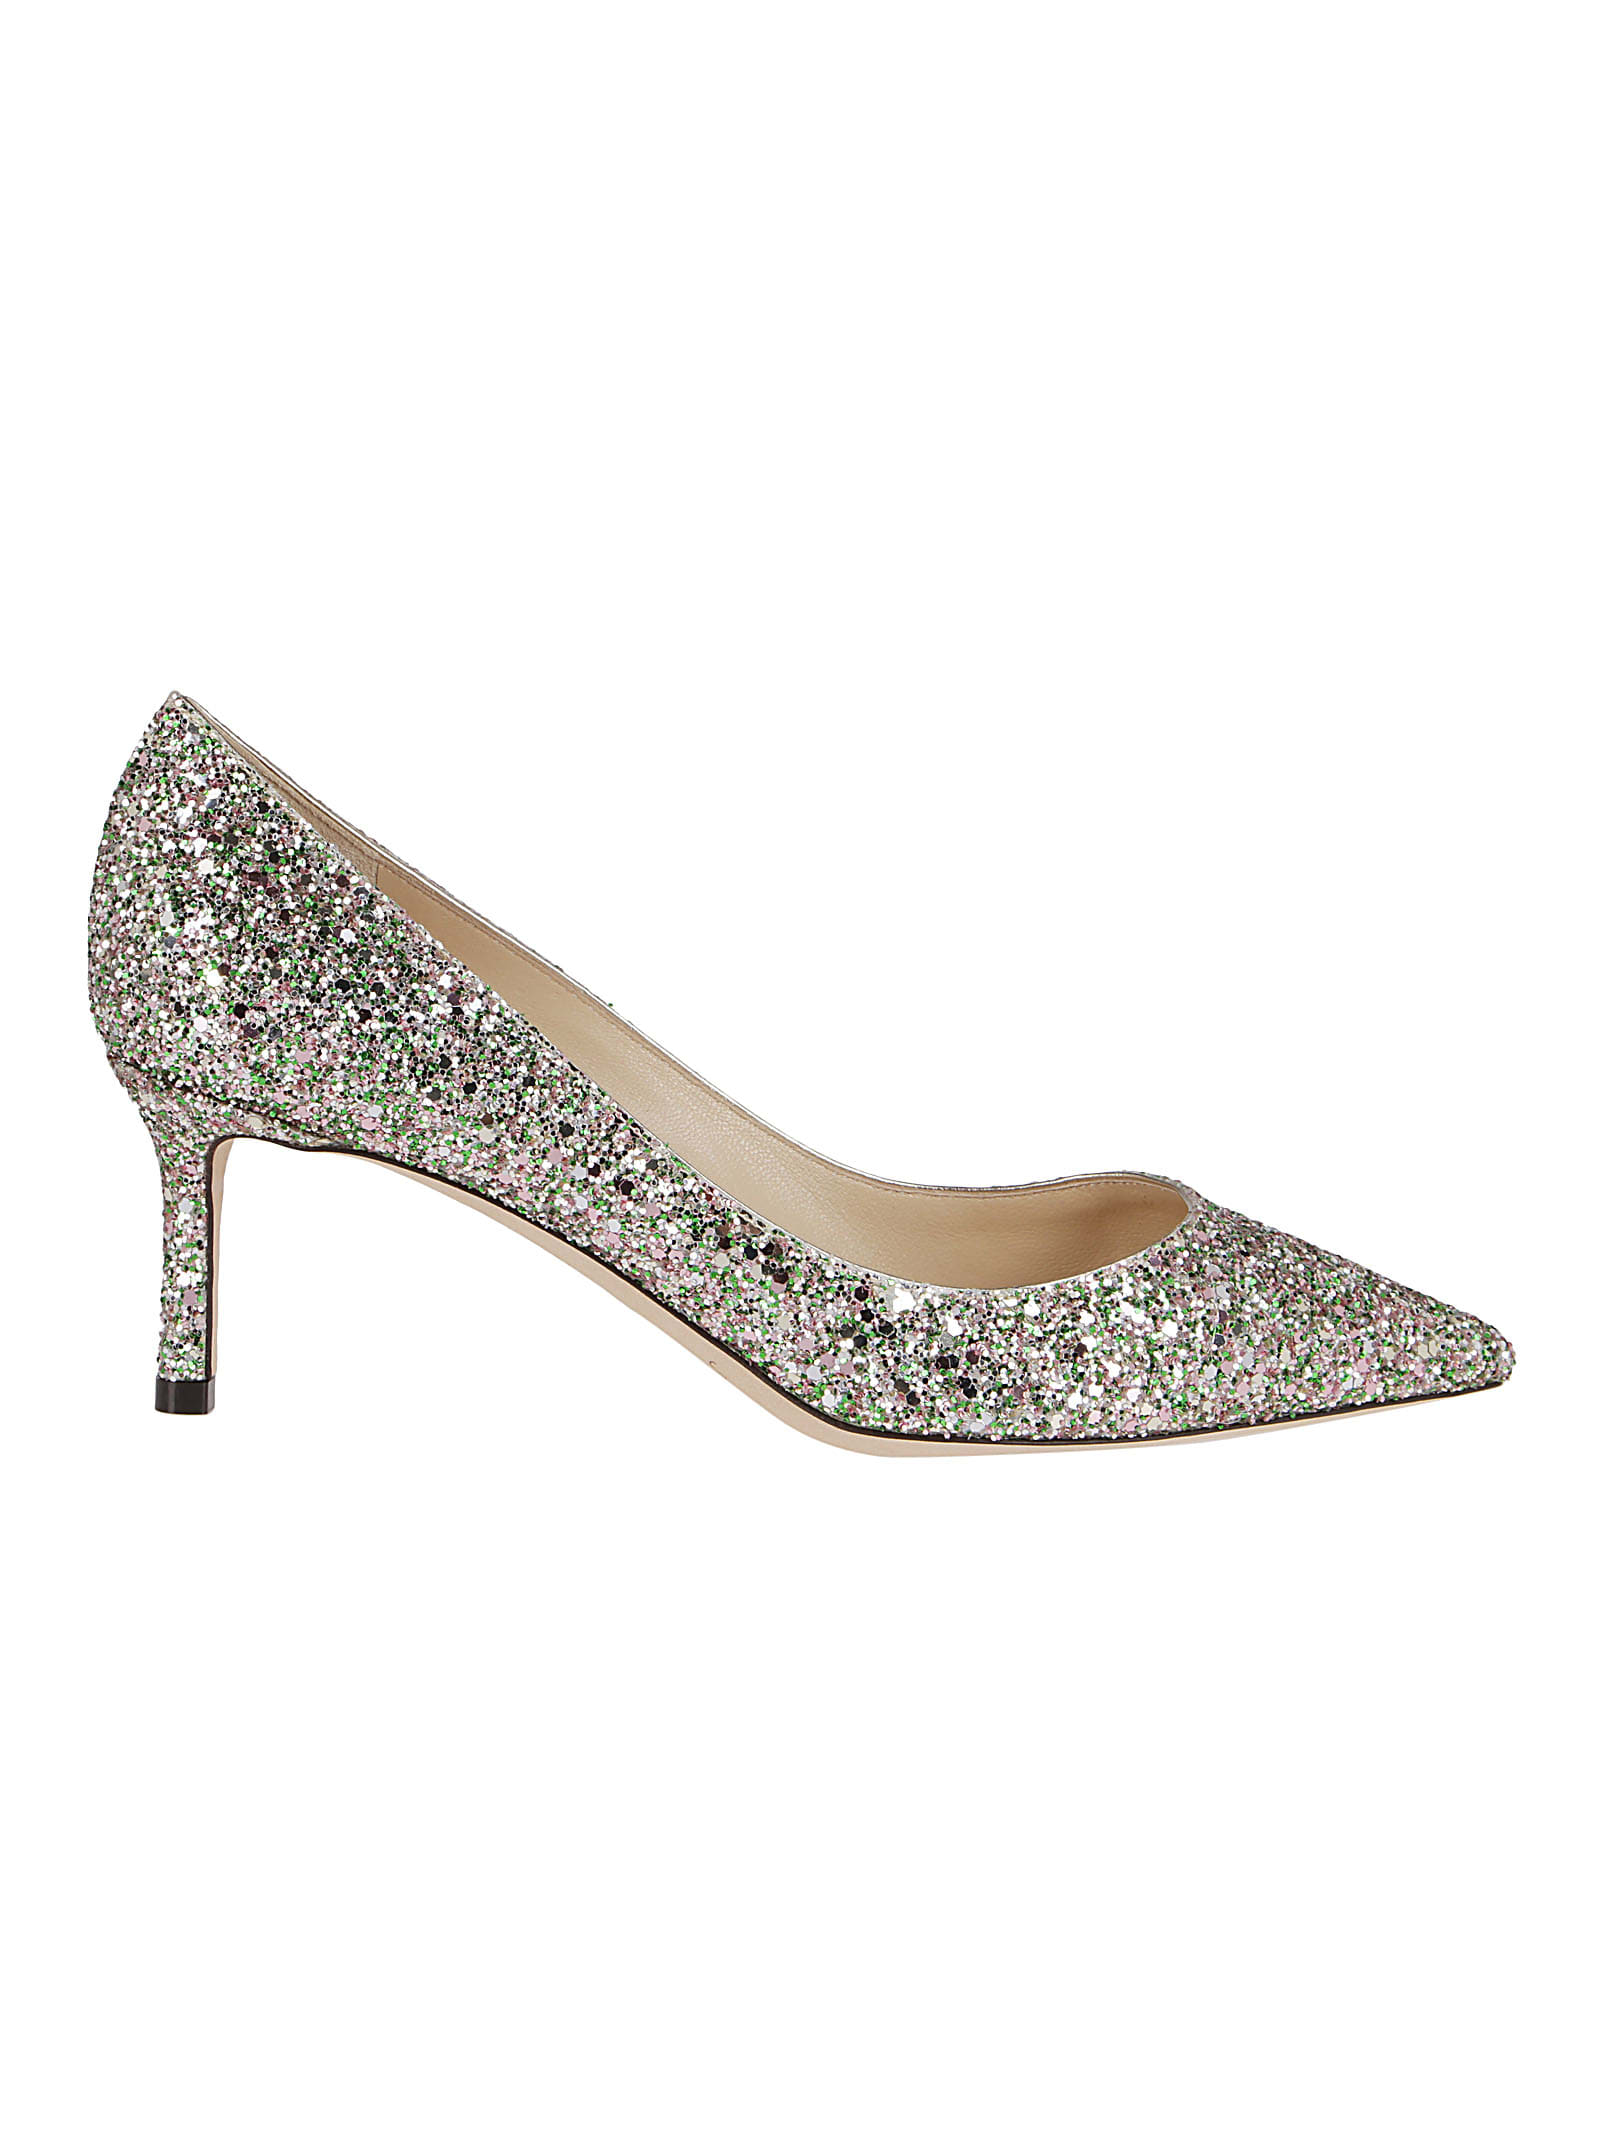 Jimmy Choo SILVER-TONE LEATHER ROMY 60 PUMPS